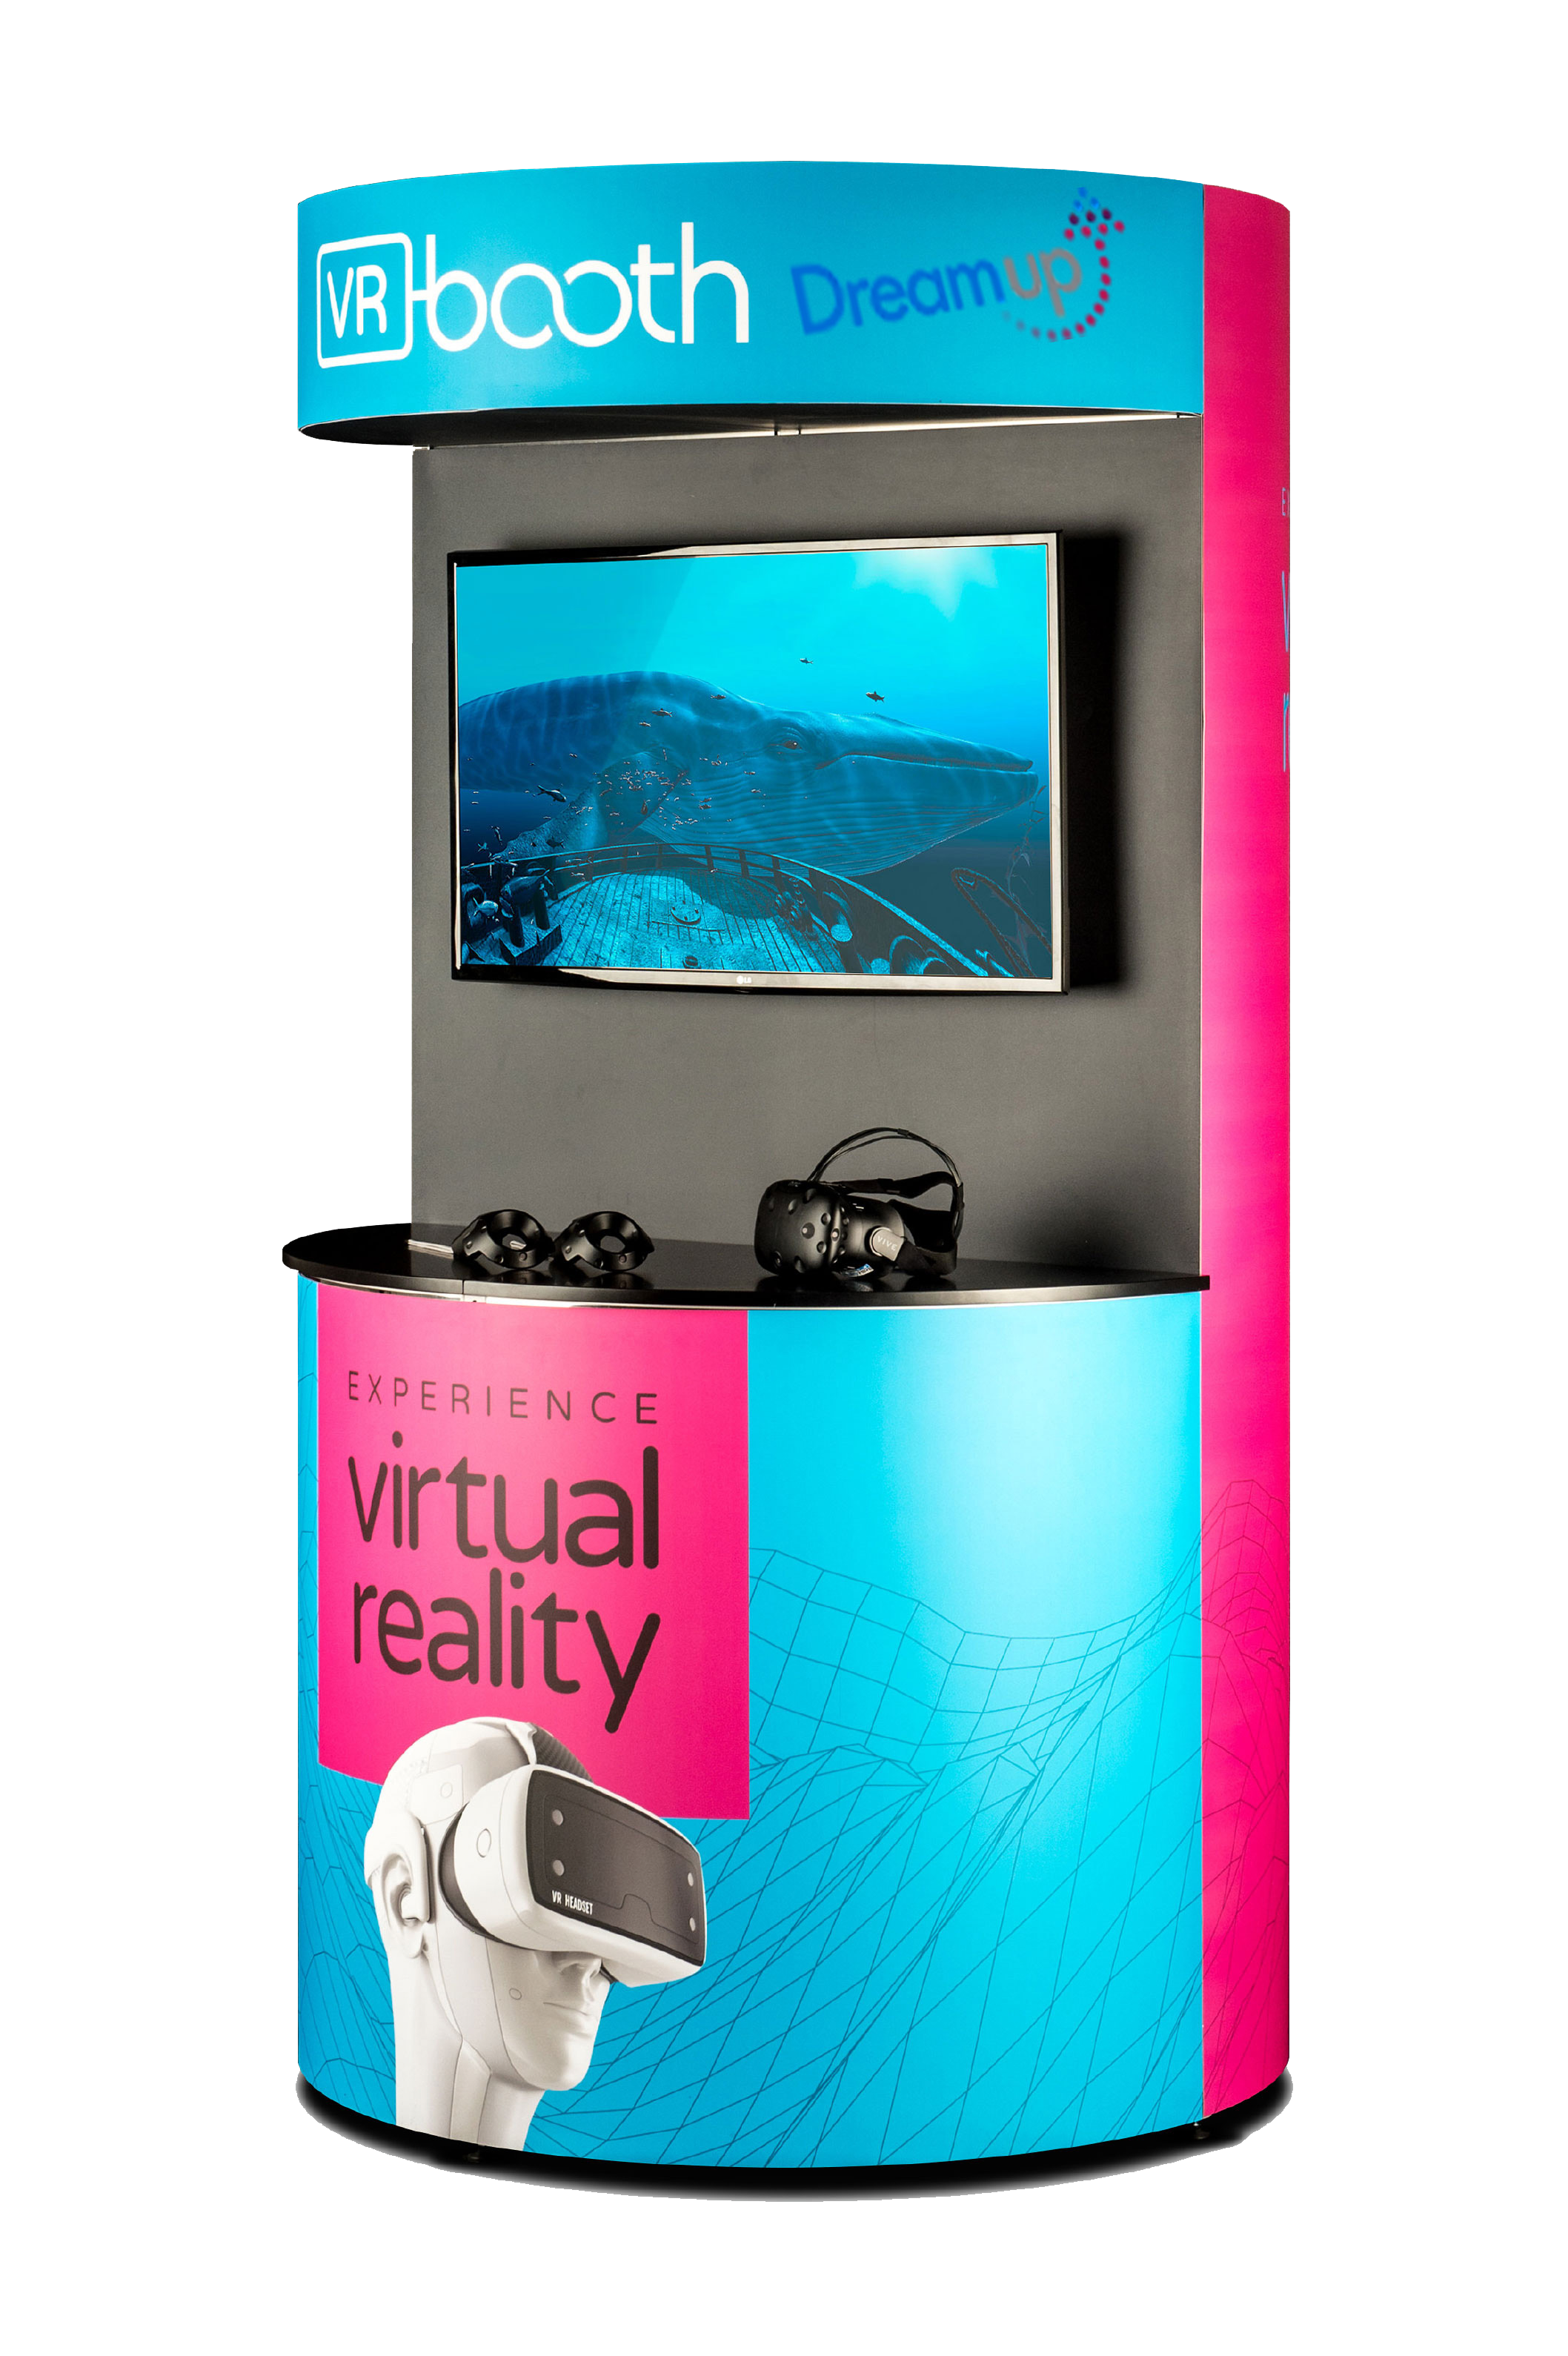 VR_Booth_Dream-Up-1